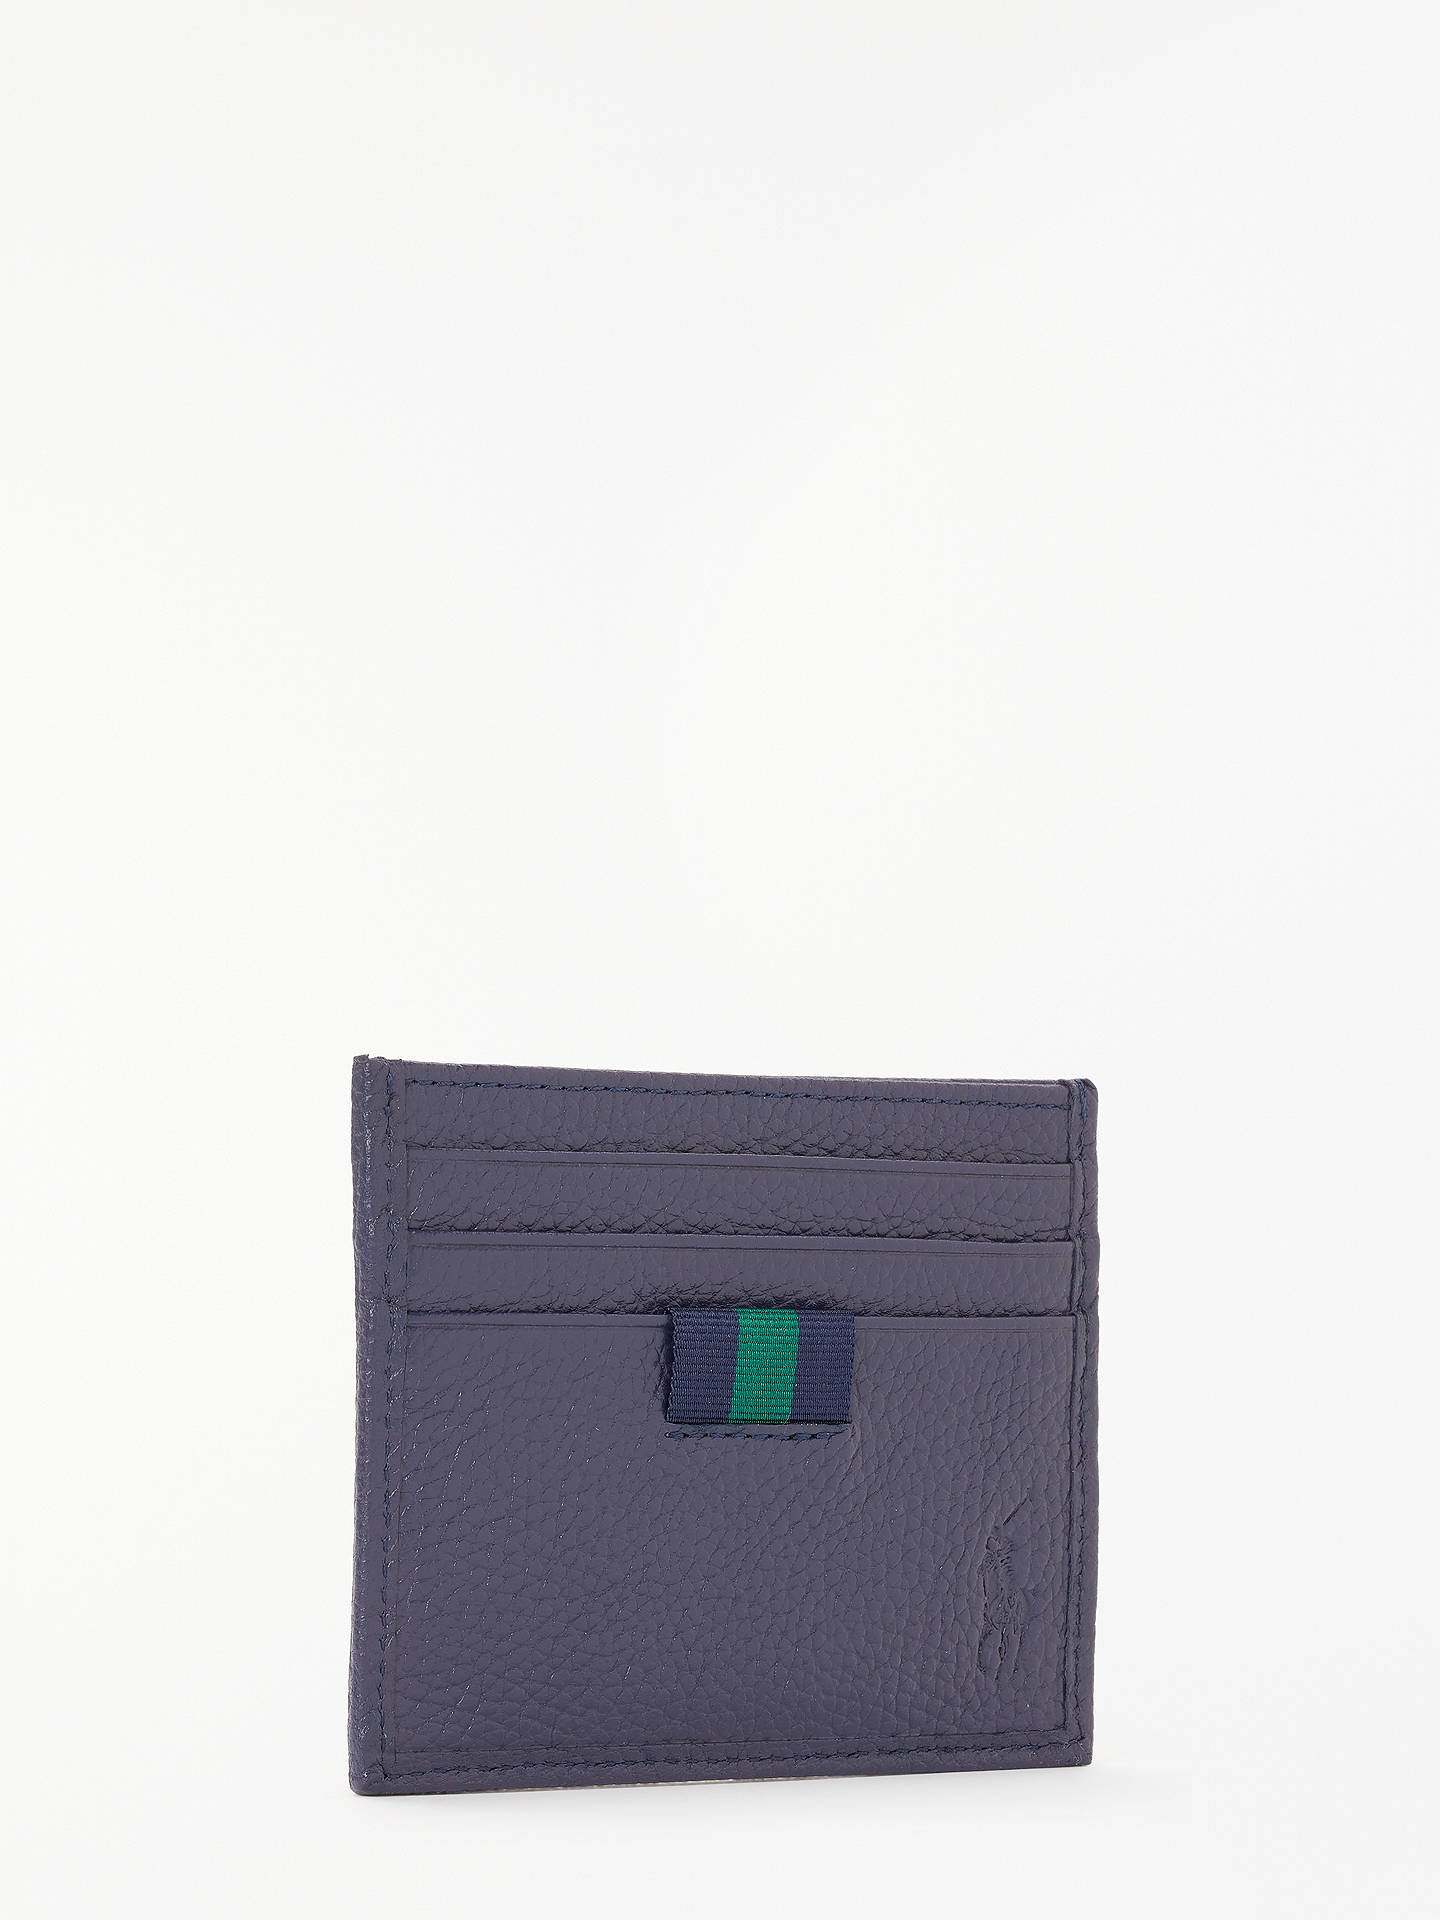 Buy Polo Ralph Lauren Pebble Leather Card Holder, Navy Online at johnlewis.com